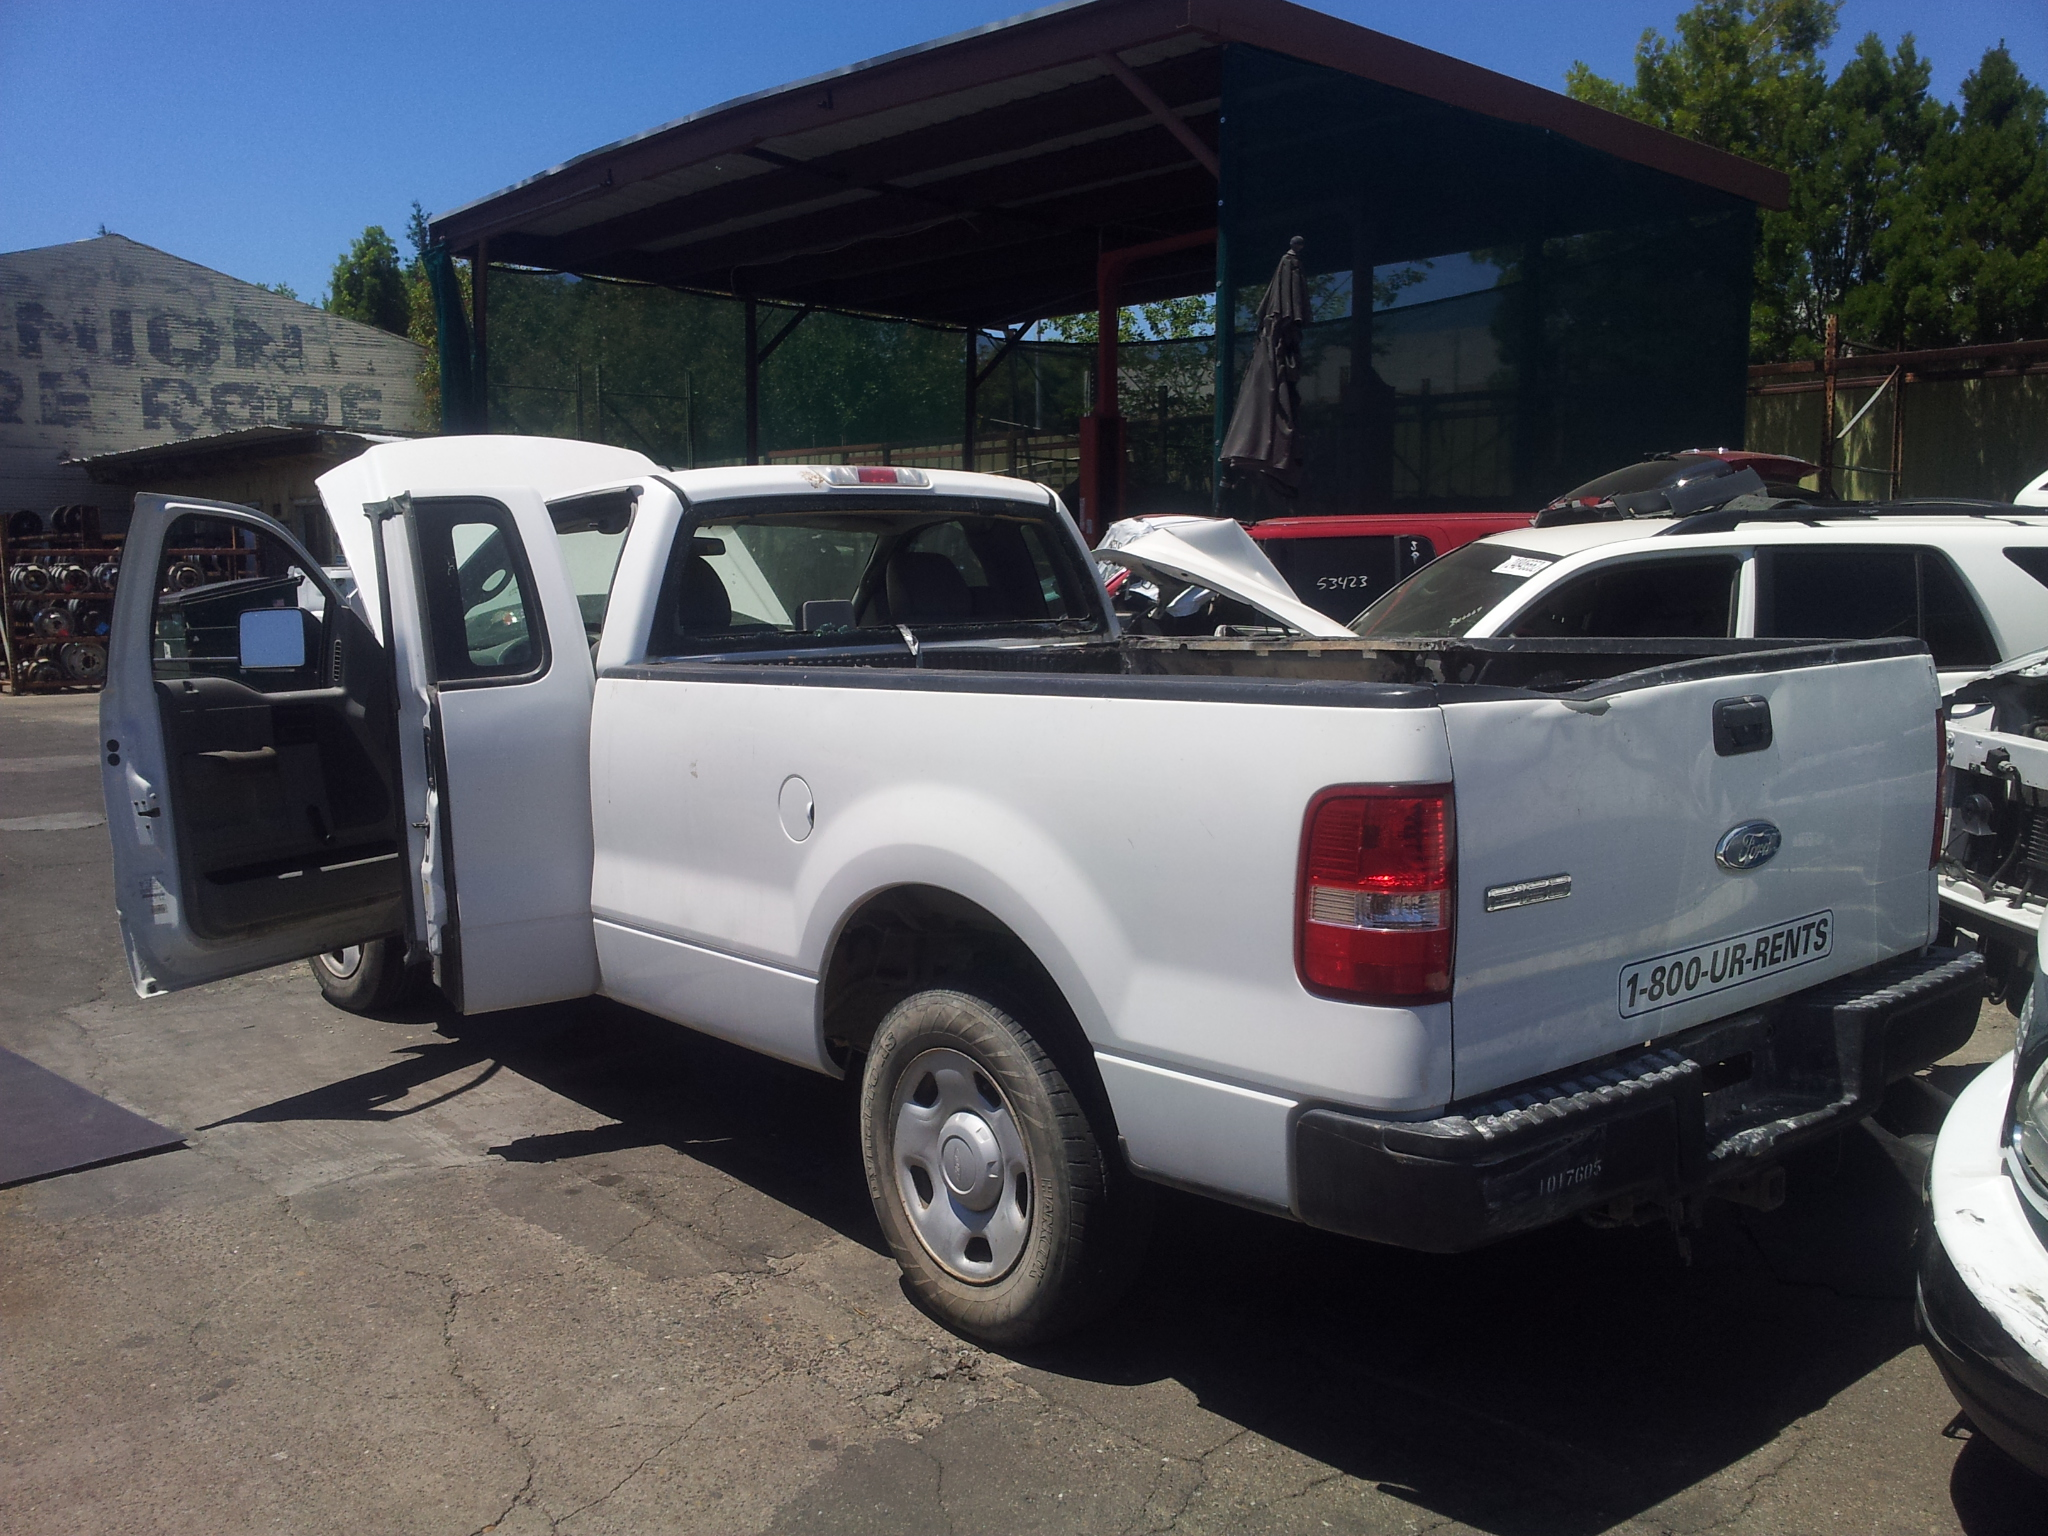 used parts 2007 ford f 150 4 2l v6 4r75e 4 speed auto subway truck parts inc auto. Black Bedroom Furniture Sets. Home Design Ideas